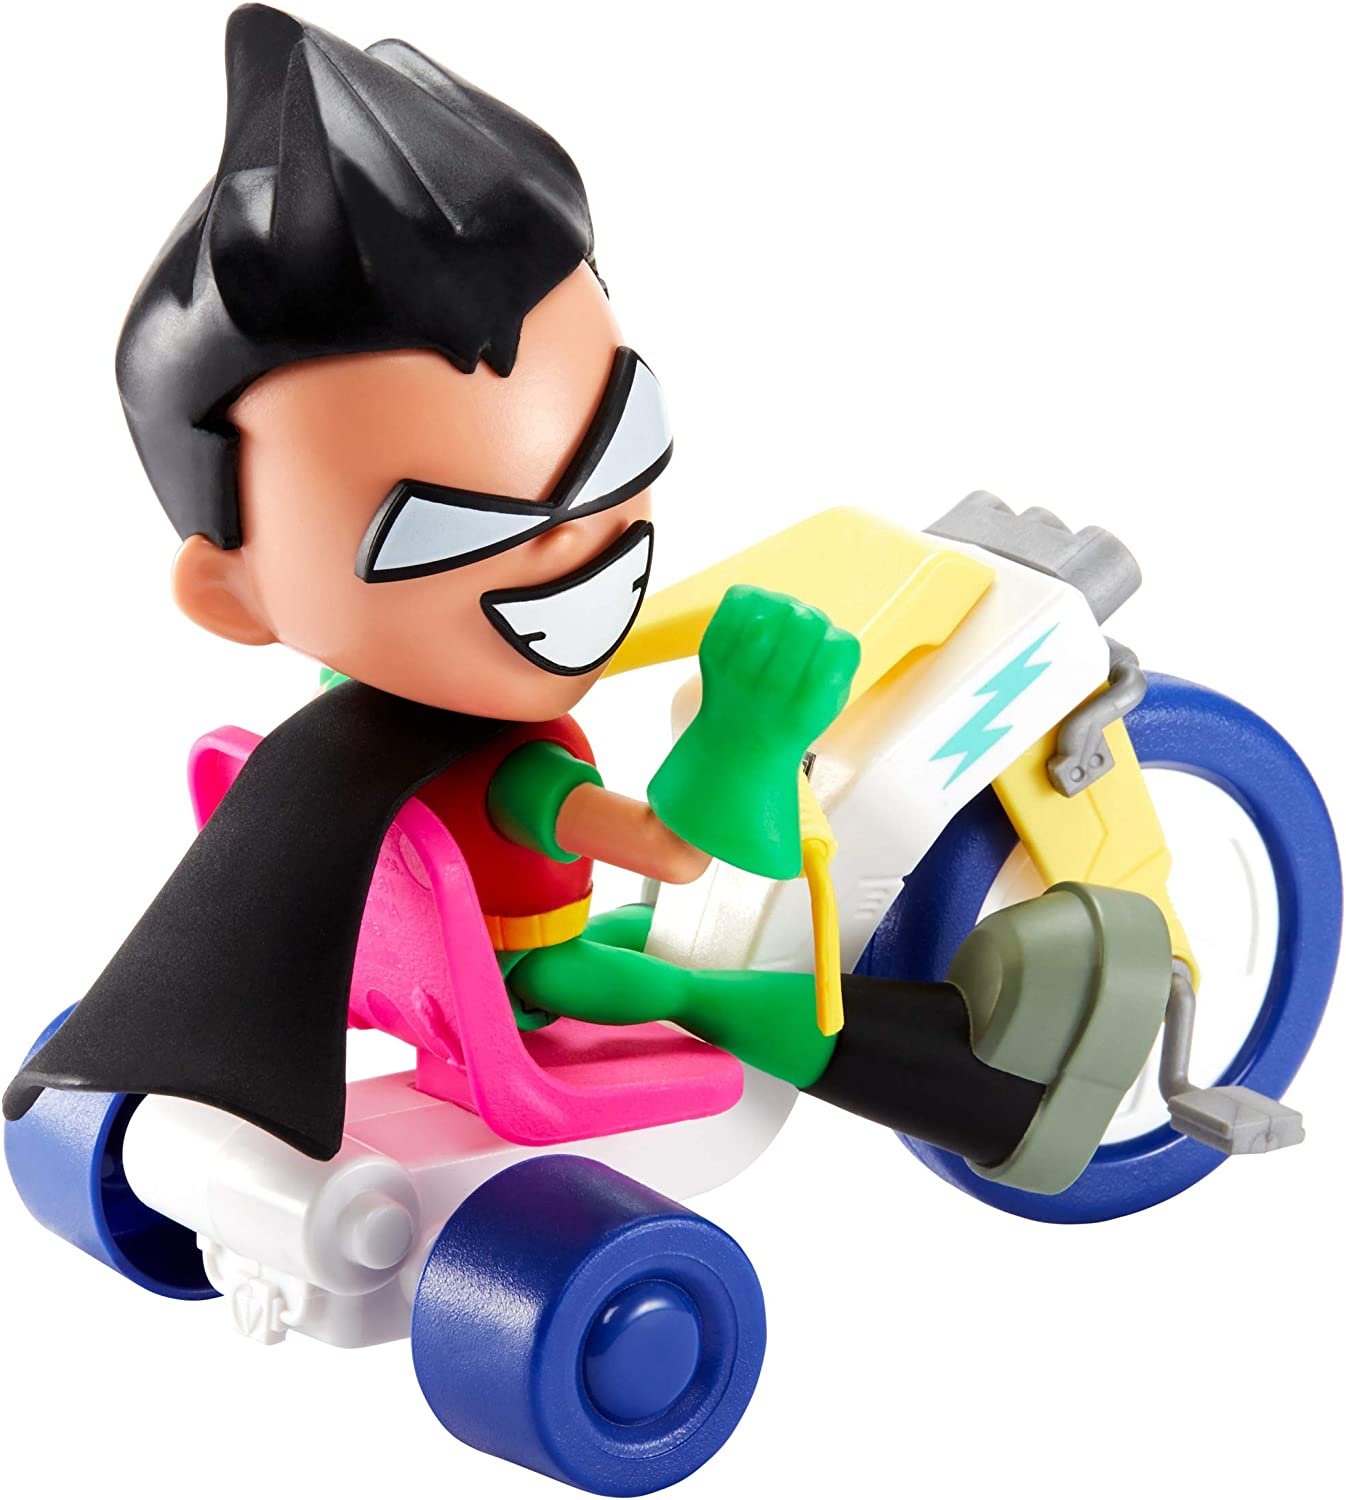 to The Movies Robin /& Time Cycle Figure /& Vehicle DC Comics Teen Titans Go